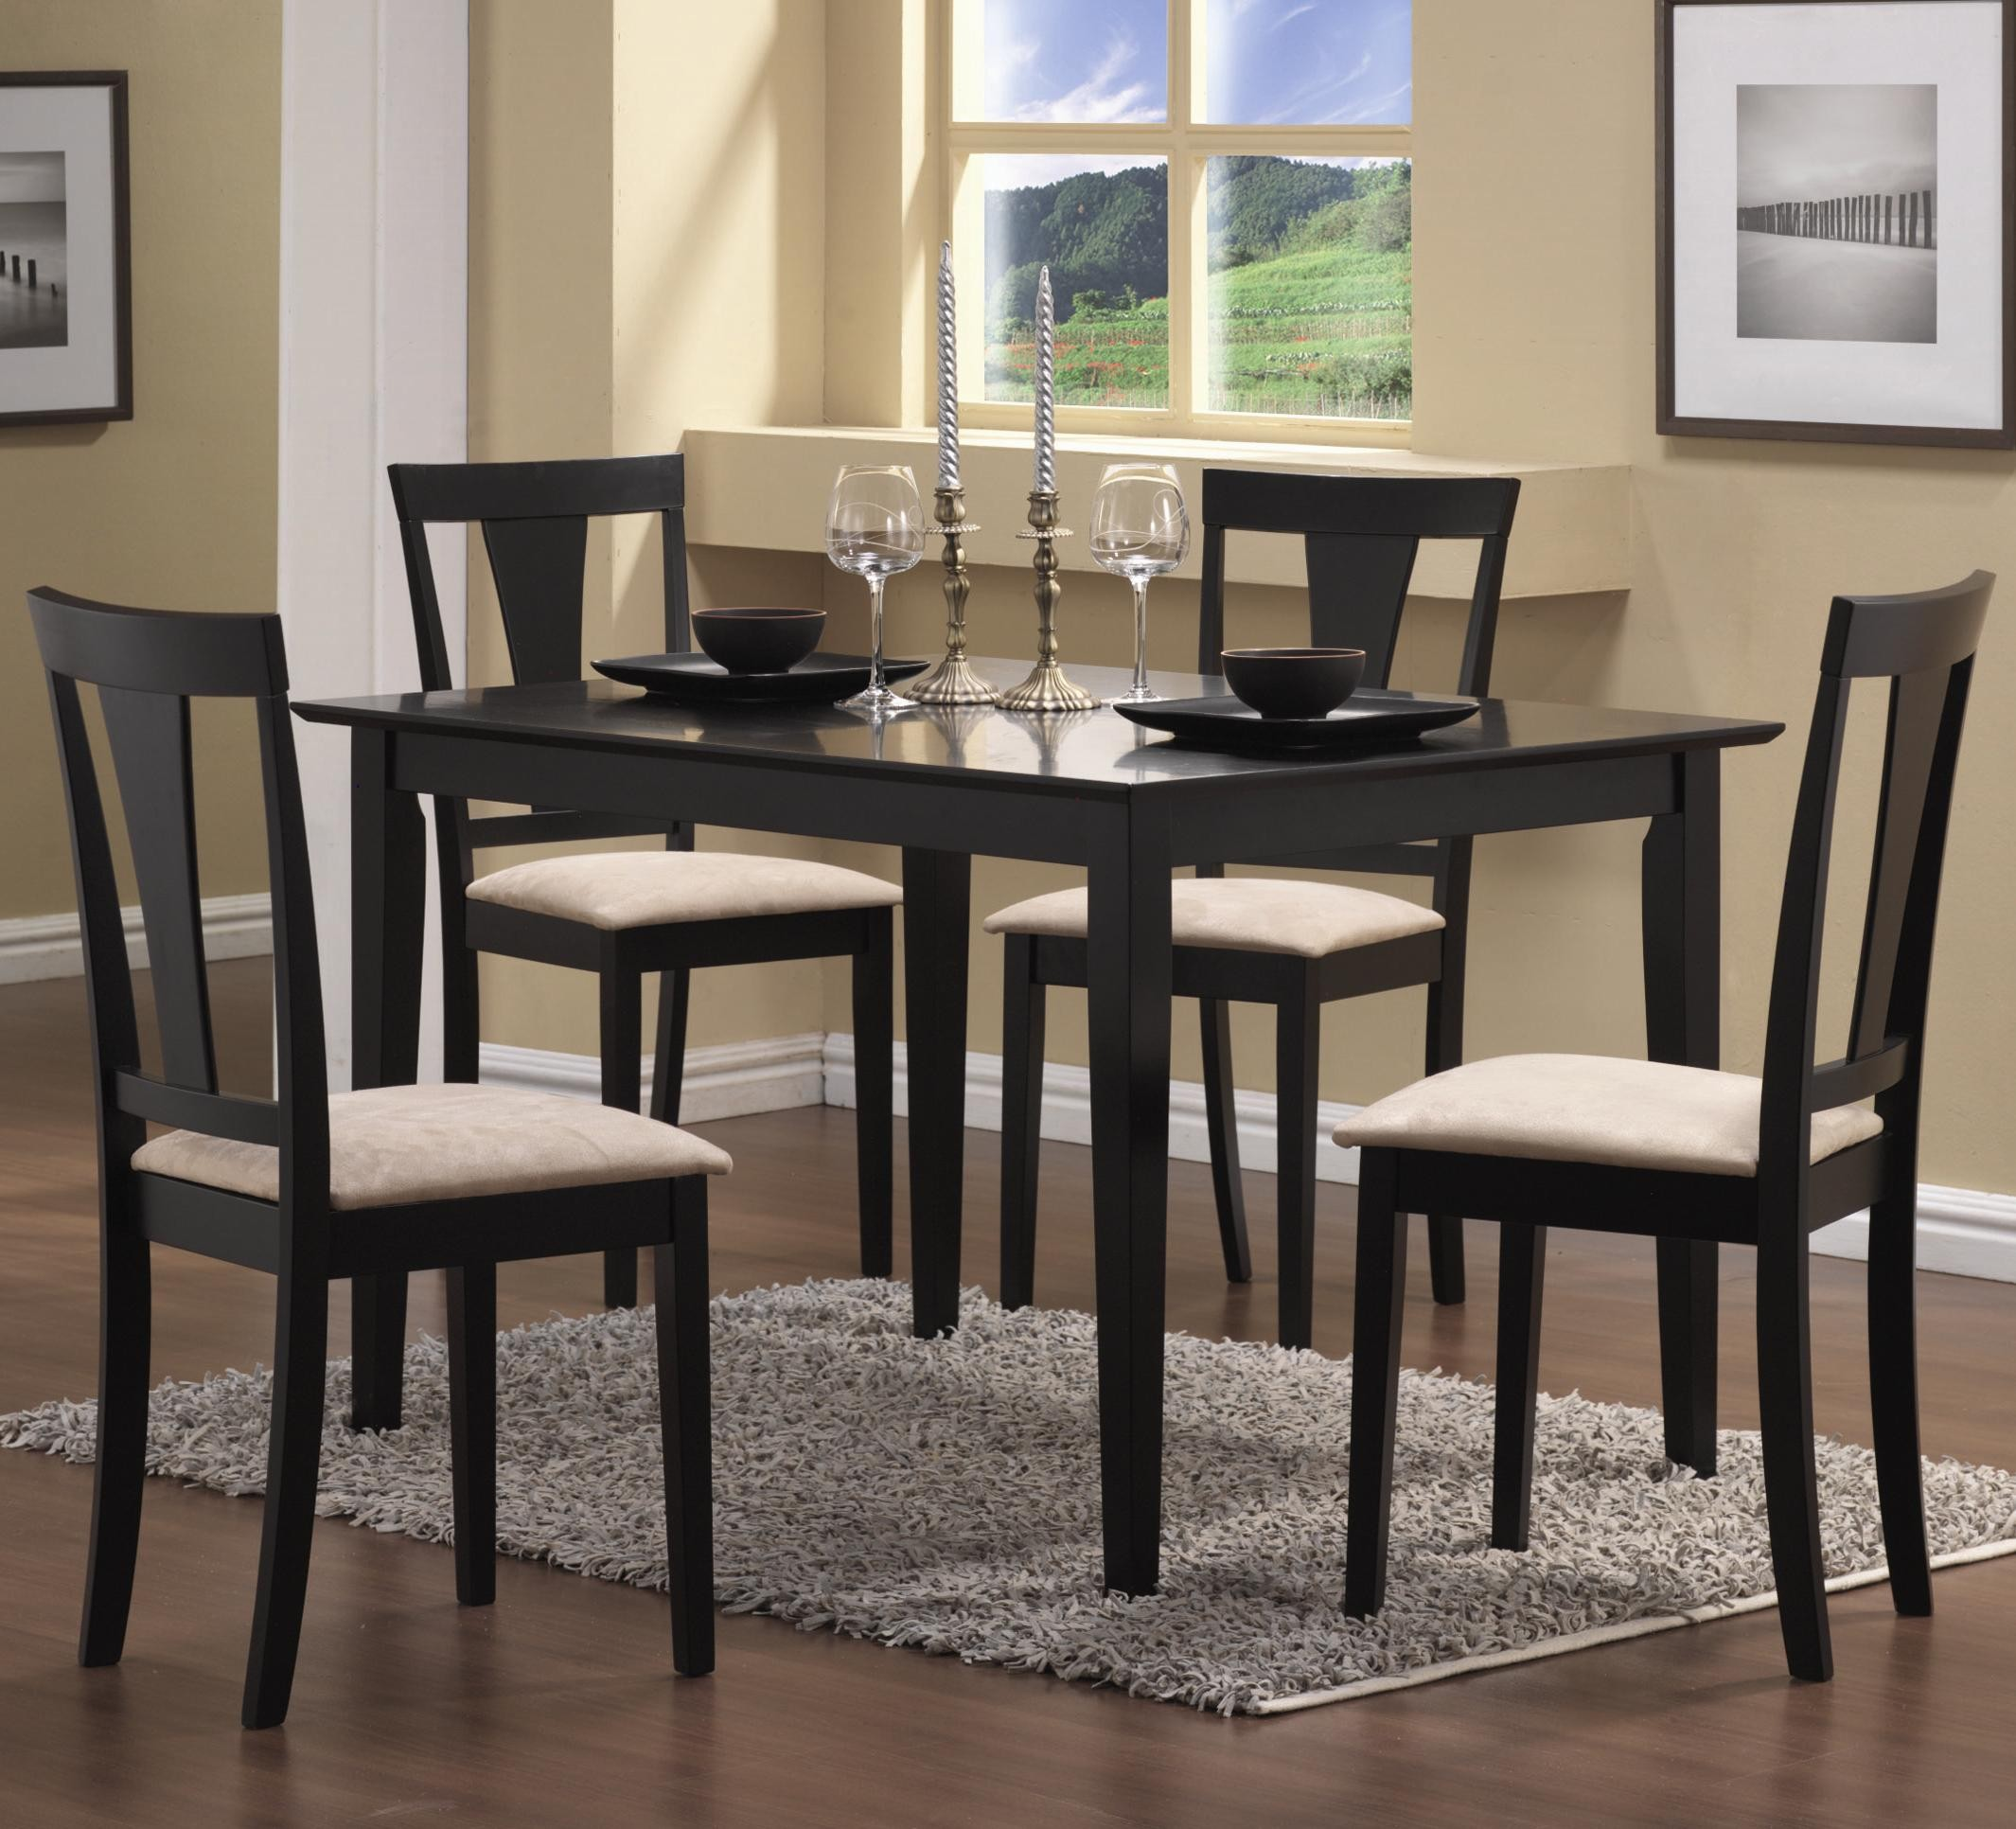 dining table set marjen of chicago chicago discount furniture